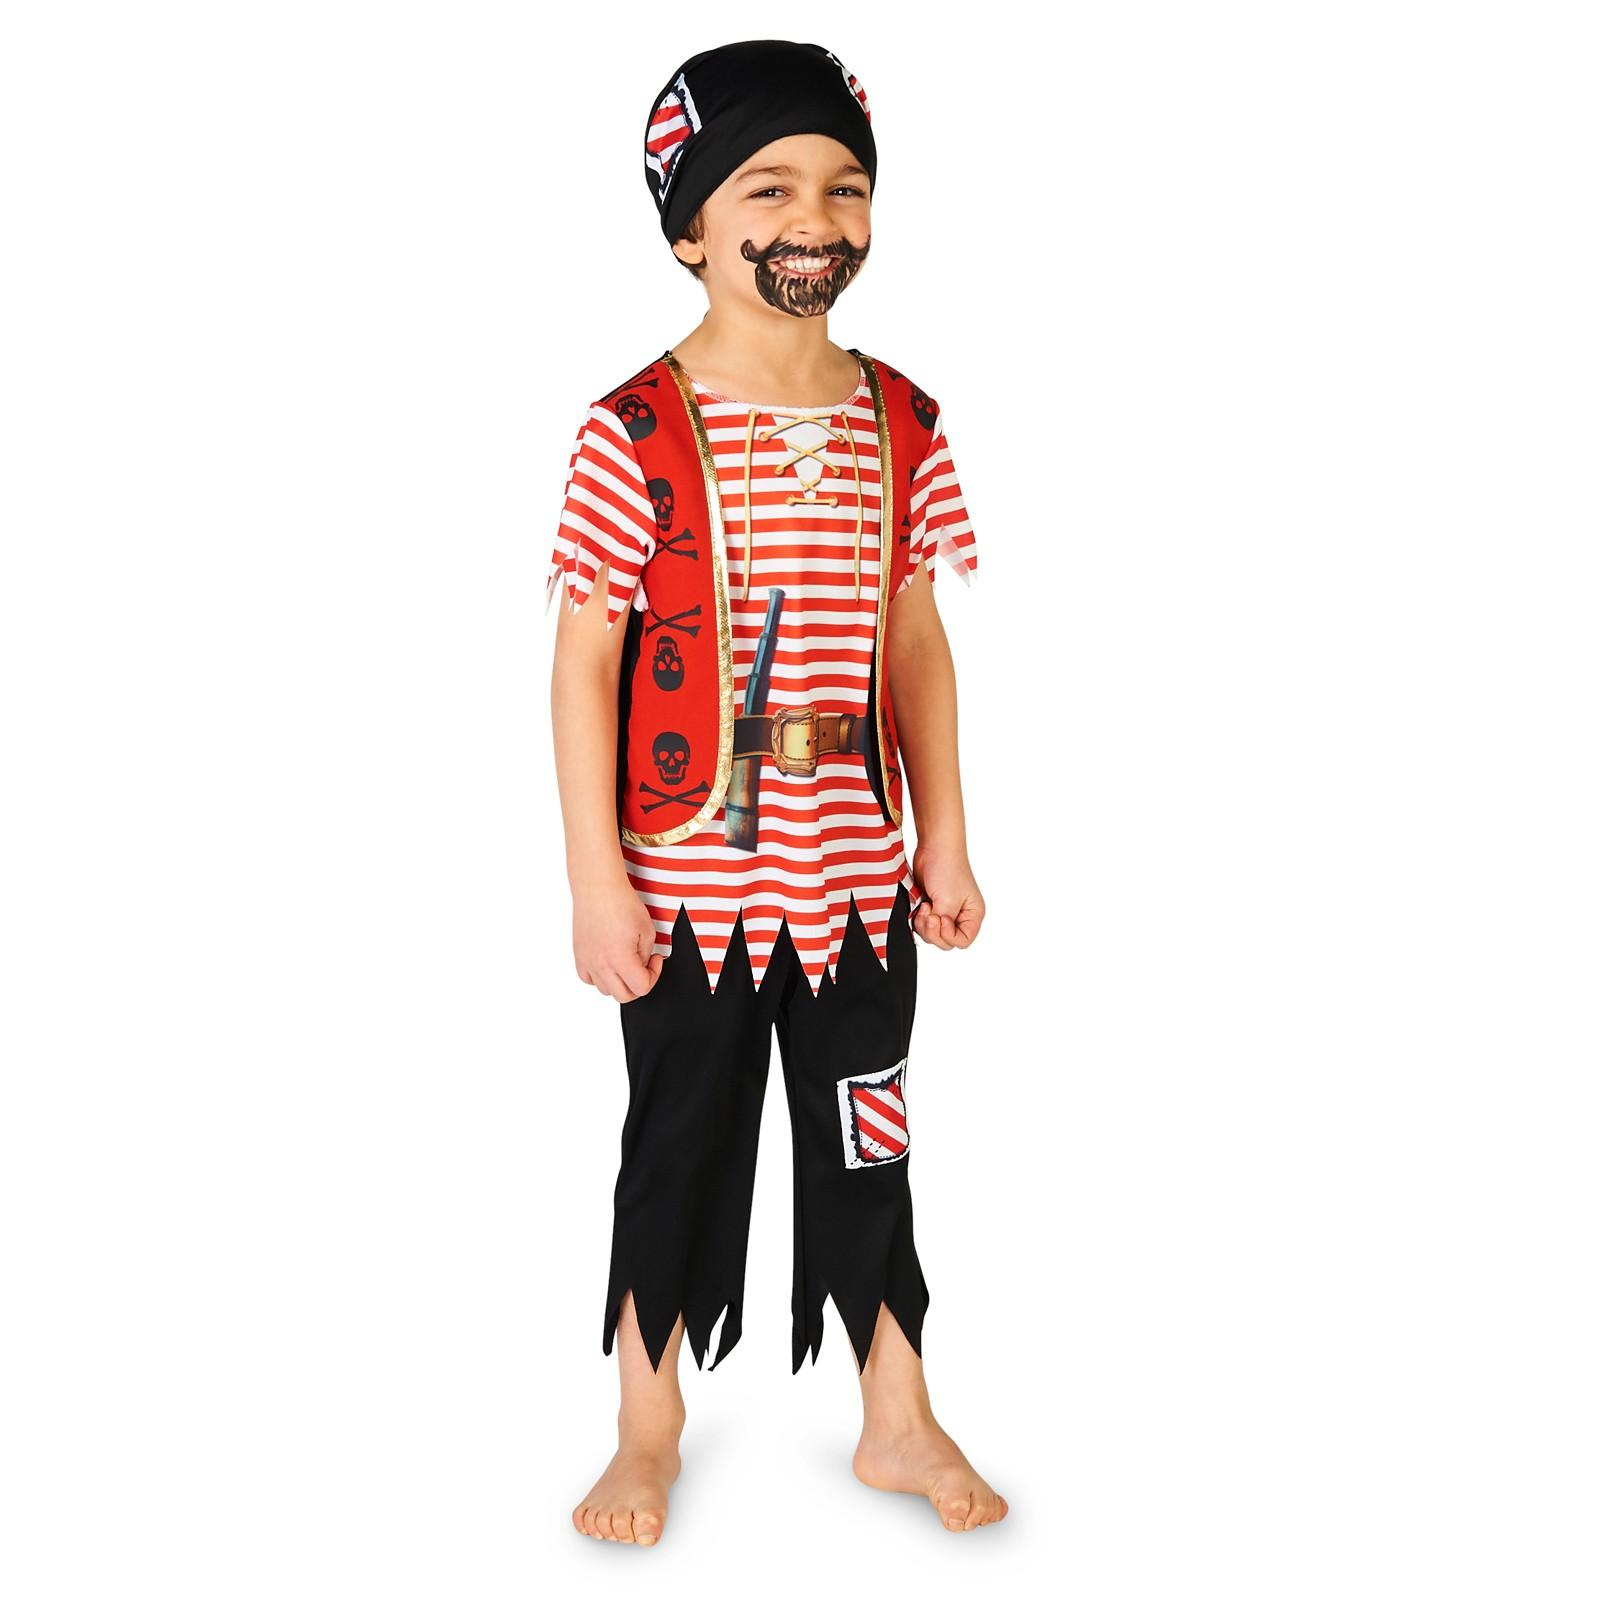 Printed Pirate Matey Toddler Costume by LEADTEX